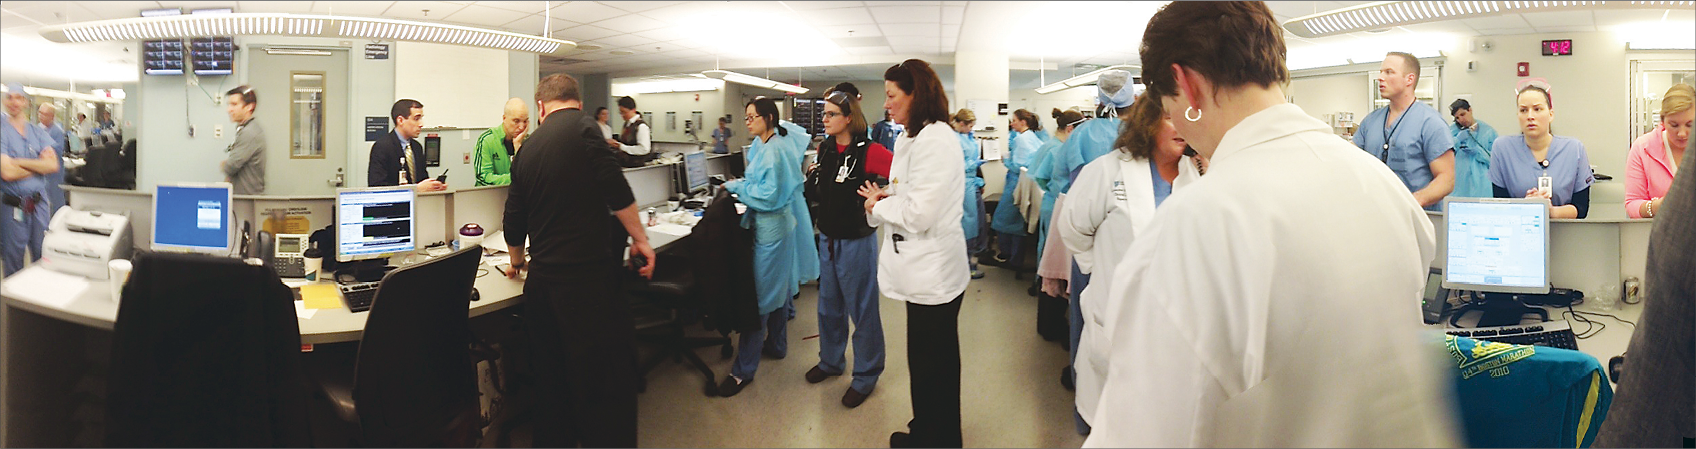 Staff in the Emergency Department at Massachusetts General Hospital